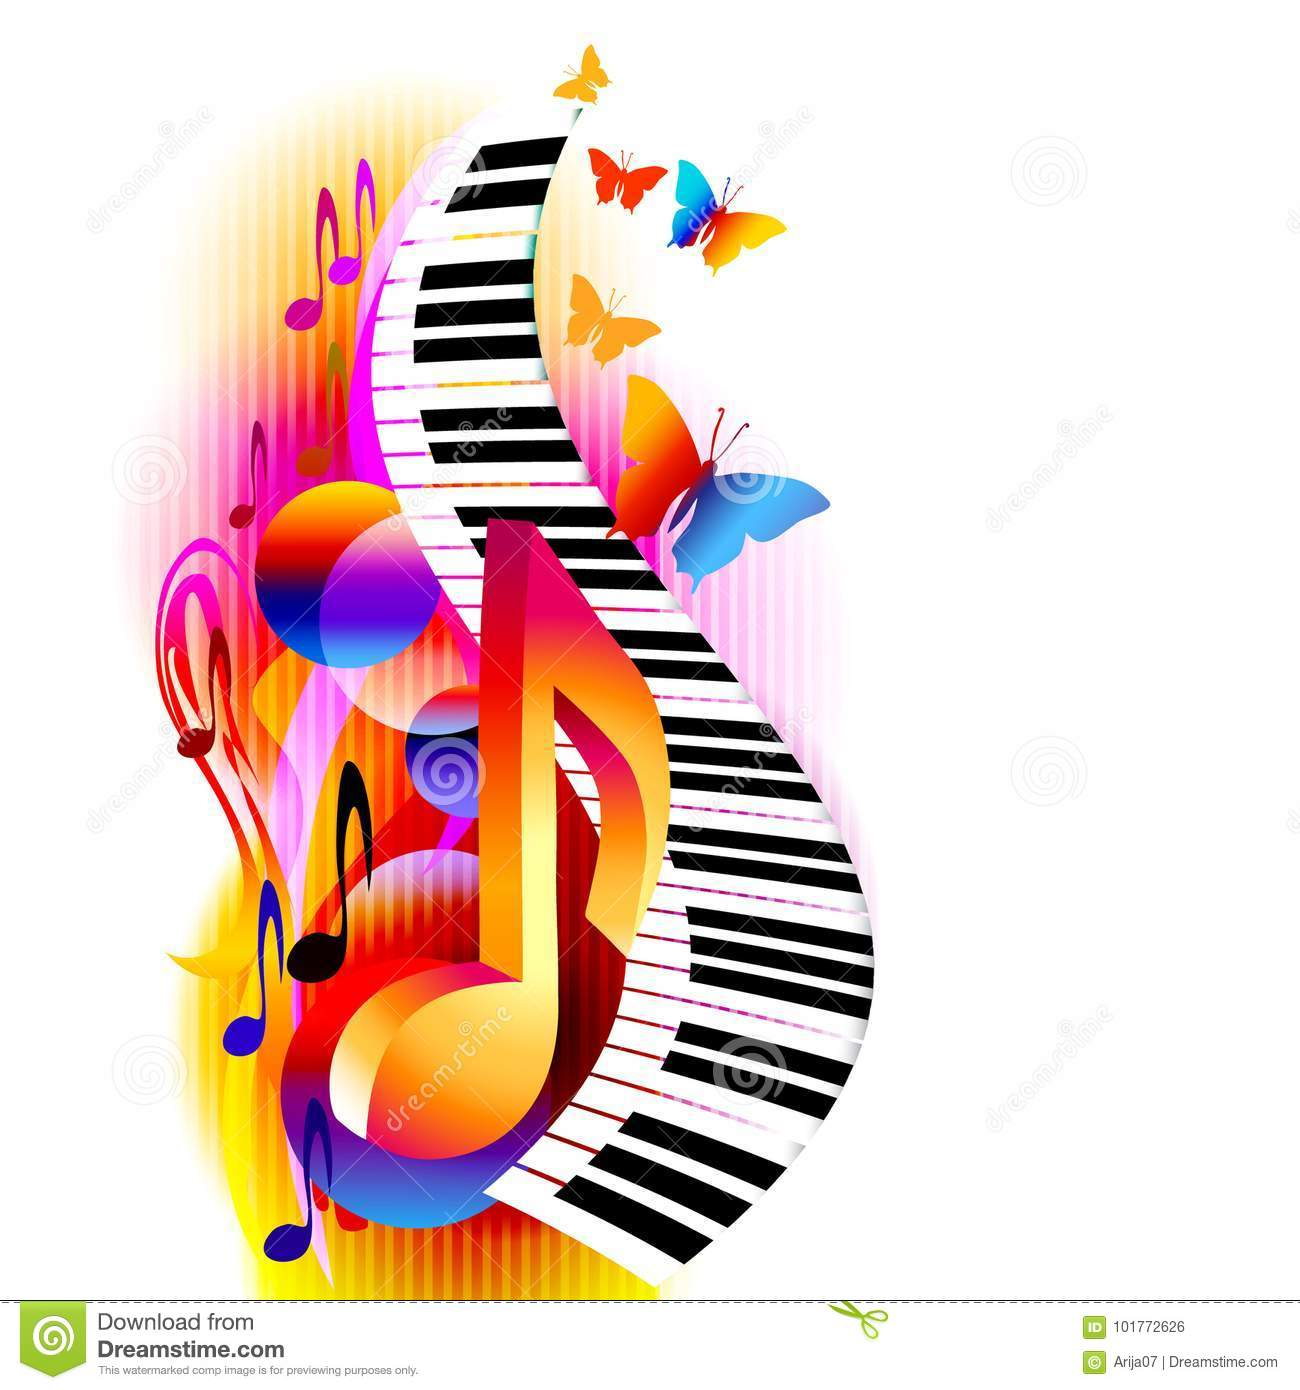 colorful 3d music notes with piano keyboard and butterfly